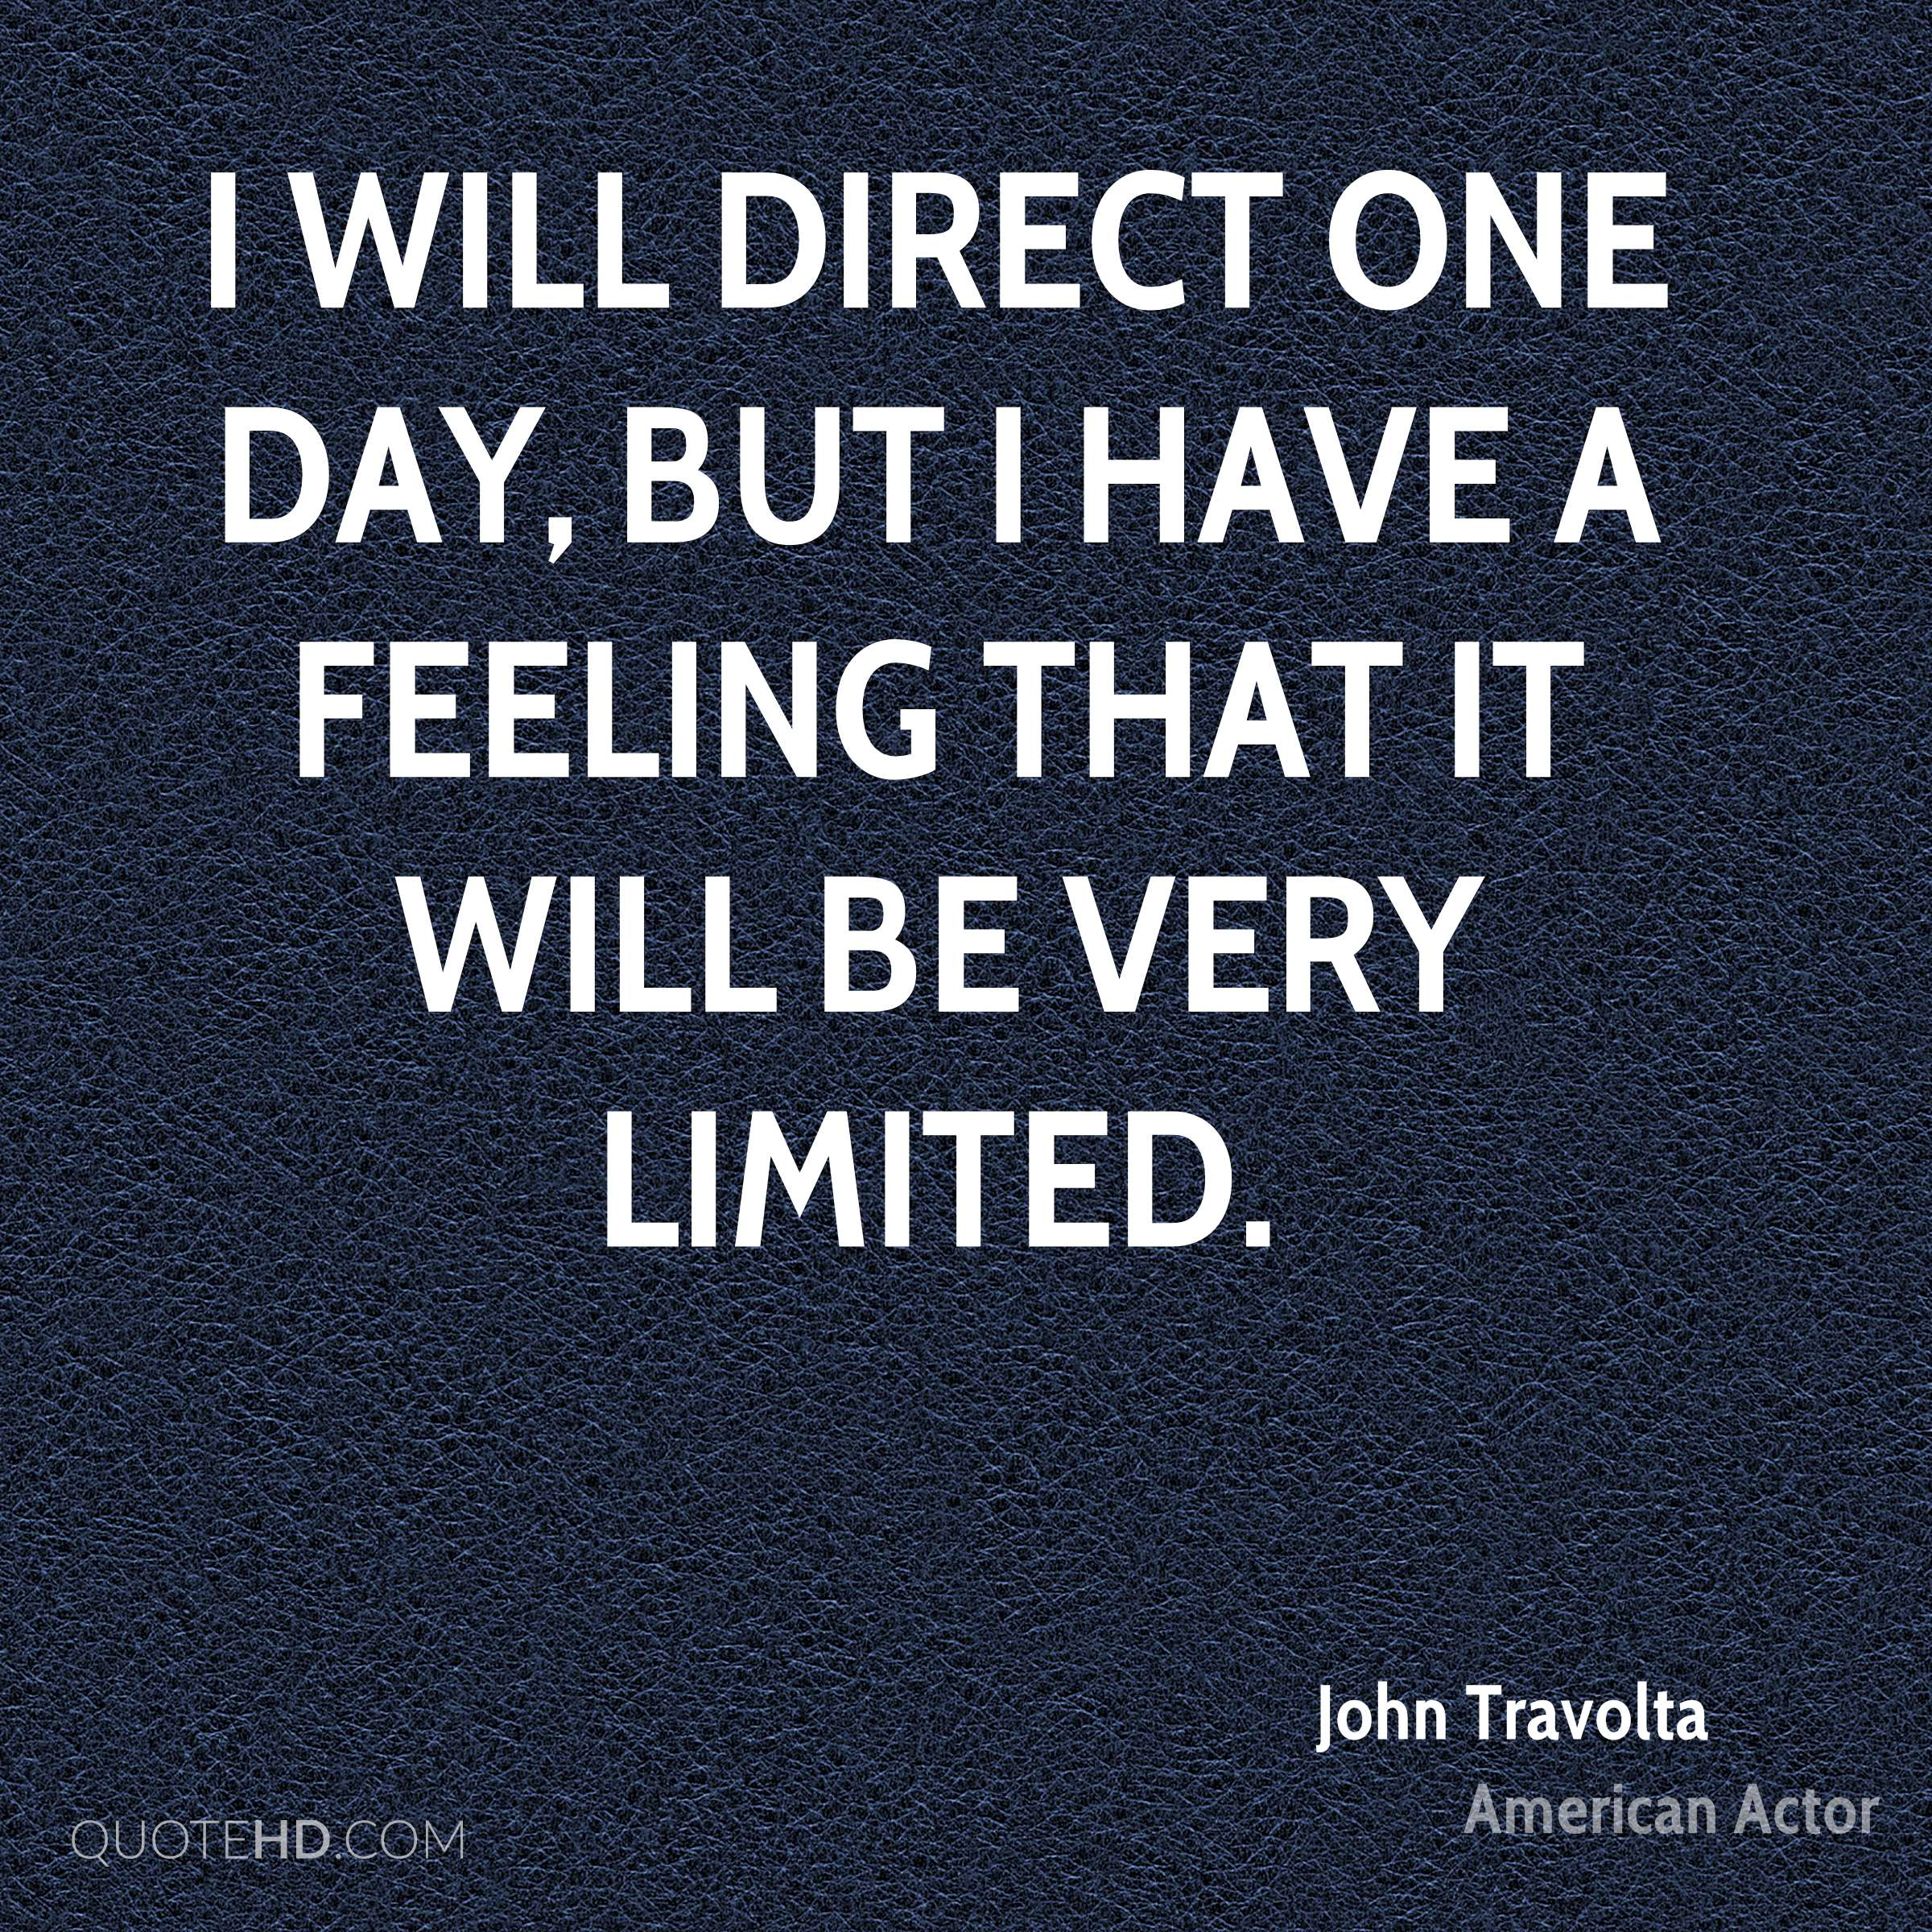 I will direct one day, but I have a feeling that it will be very limited.